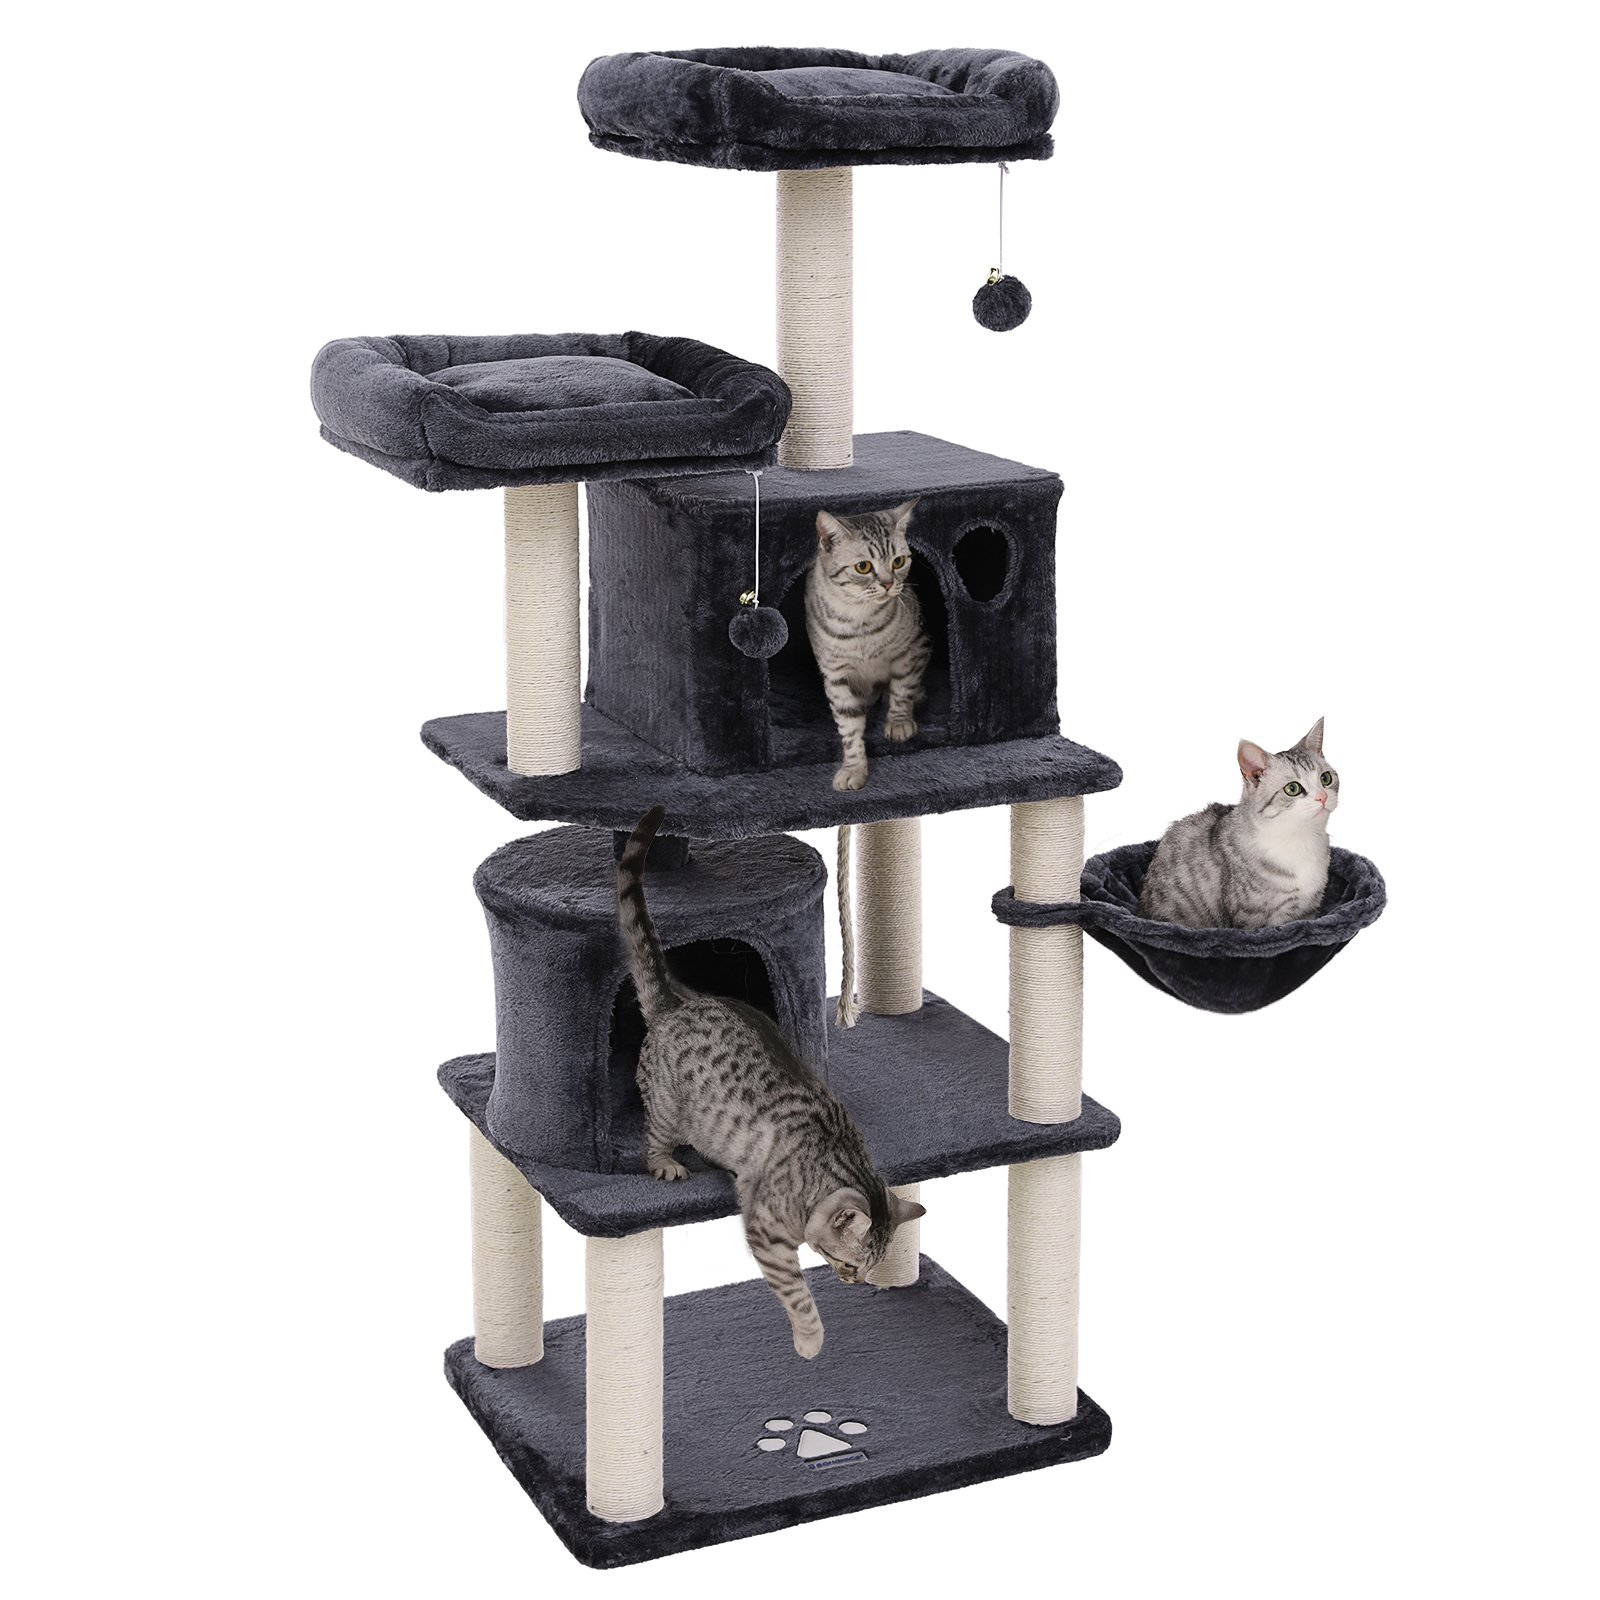 FEANDREA Multi-Level 60 inches Cat Tree with Sisal-Covered Scratching Posts, Plush Perches, Basket and 2 Condos, Cat Tower Furniture - for Kittens, Cats and Pets - Smoky Gray UPCT90G by FEANDREA